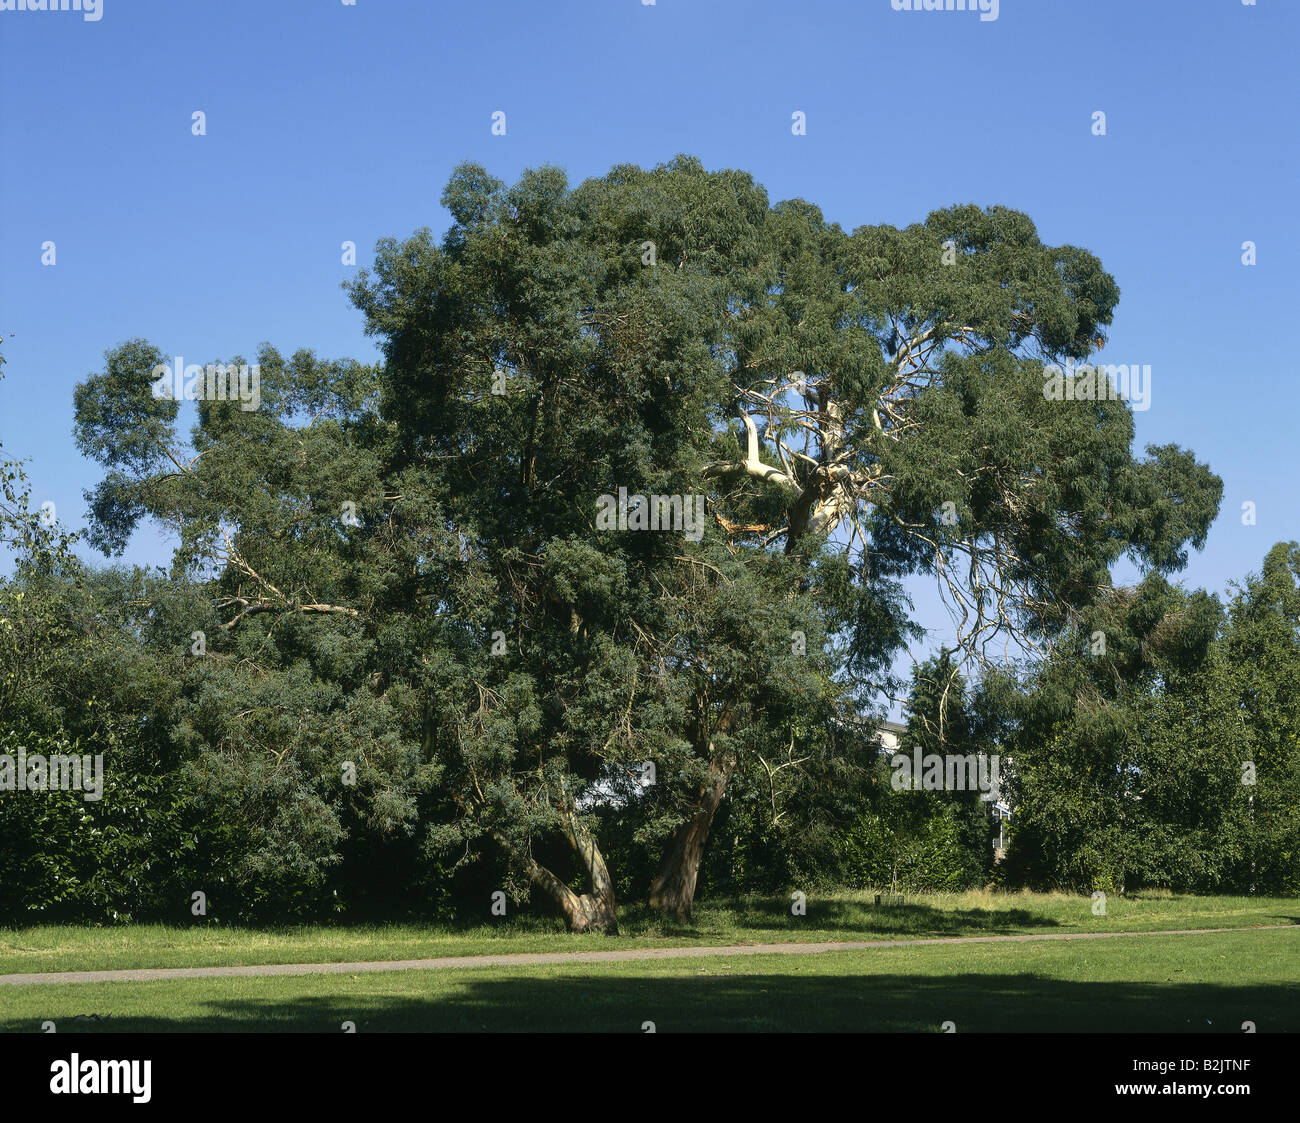 botaniy, Eucalyptus parvifolia, 'Small leaved Gum' at Kew Gardens, London, Great Britain, Additional-Rights - Stock Image